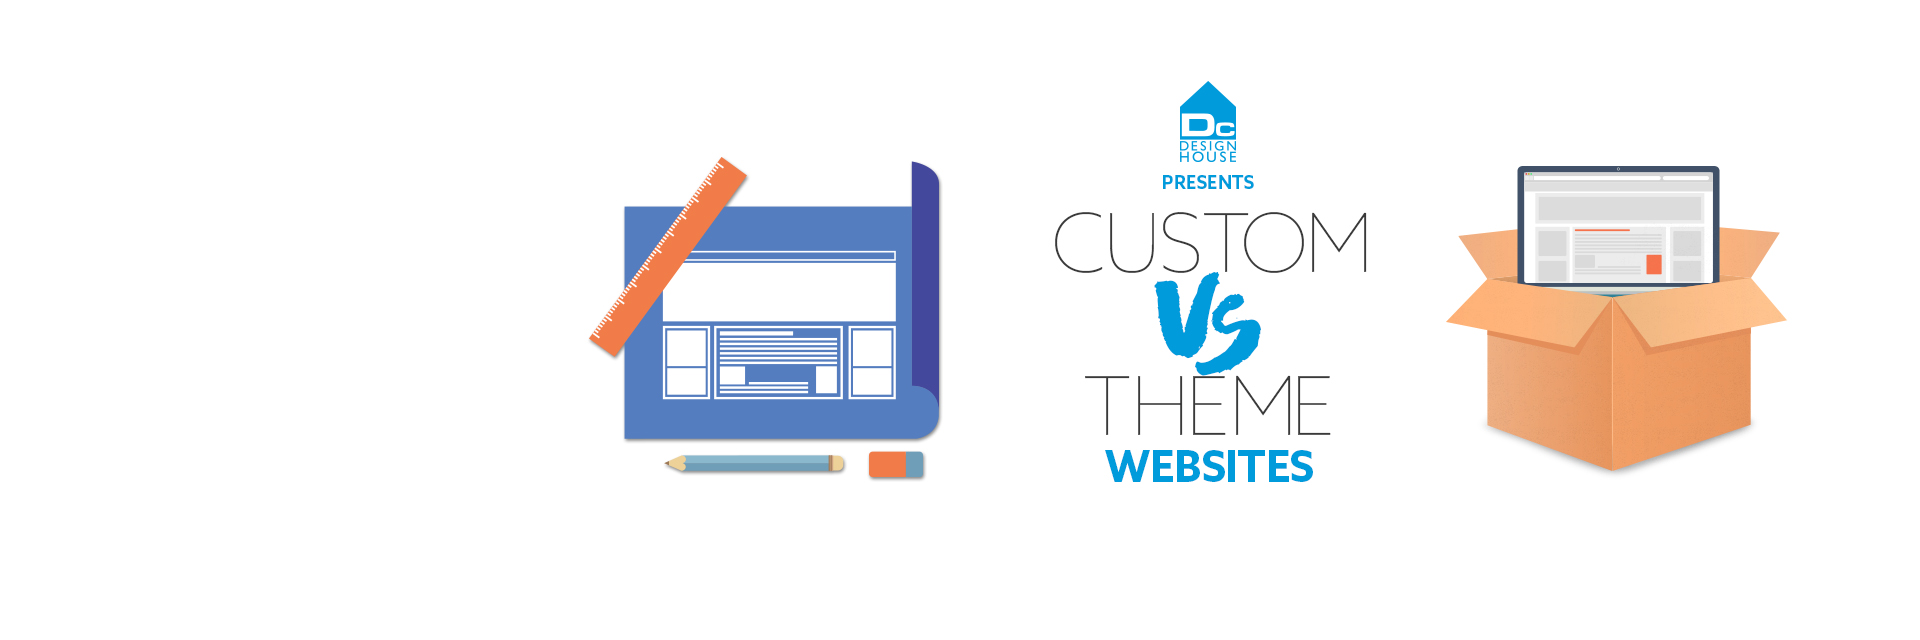 Dc Presents: Custom Vs Theme Websites – Part One